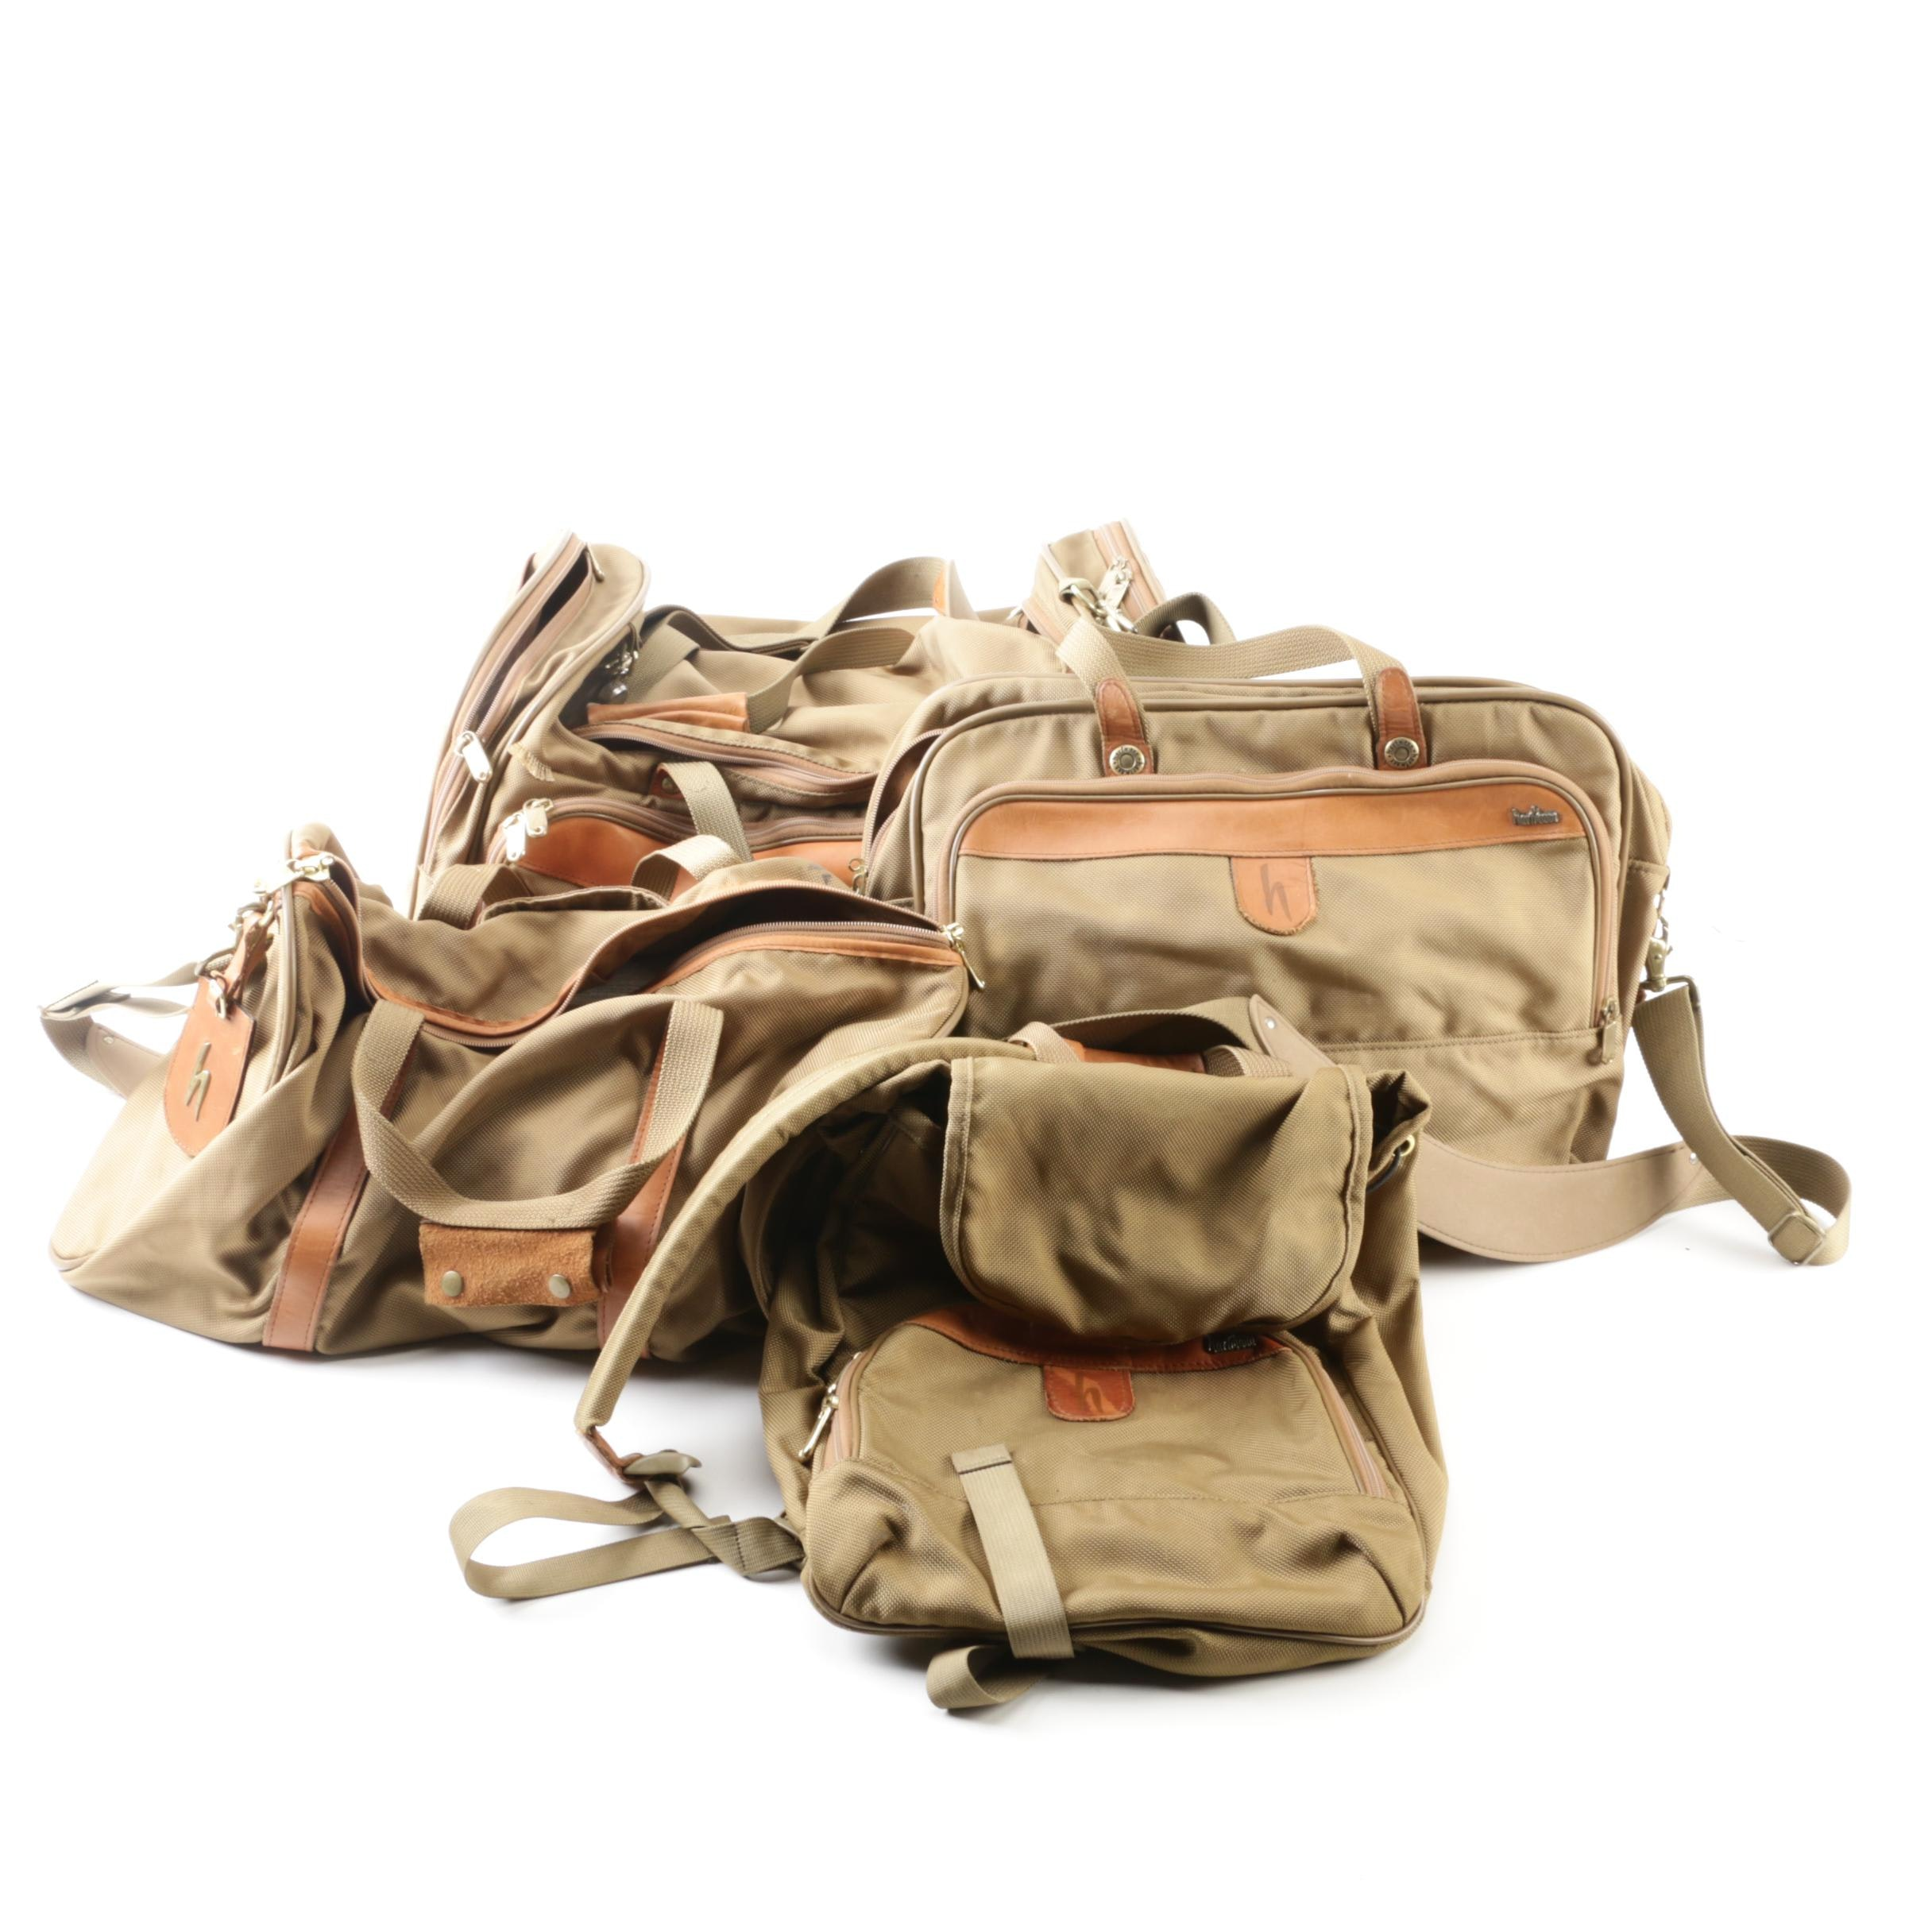 Hartmann Nylon and Leather Duffel and Travel Bags